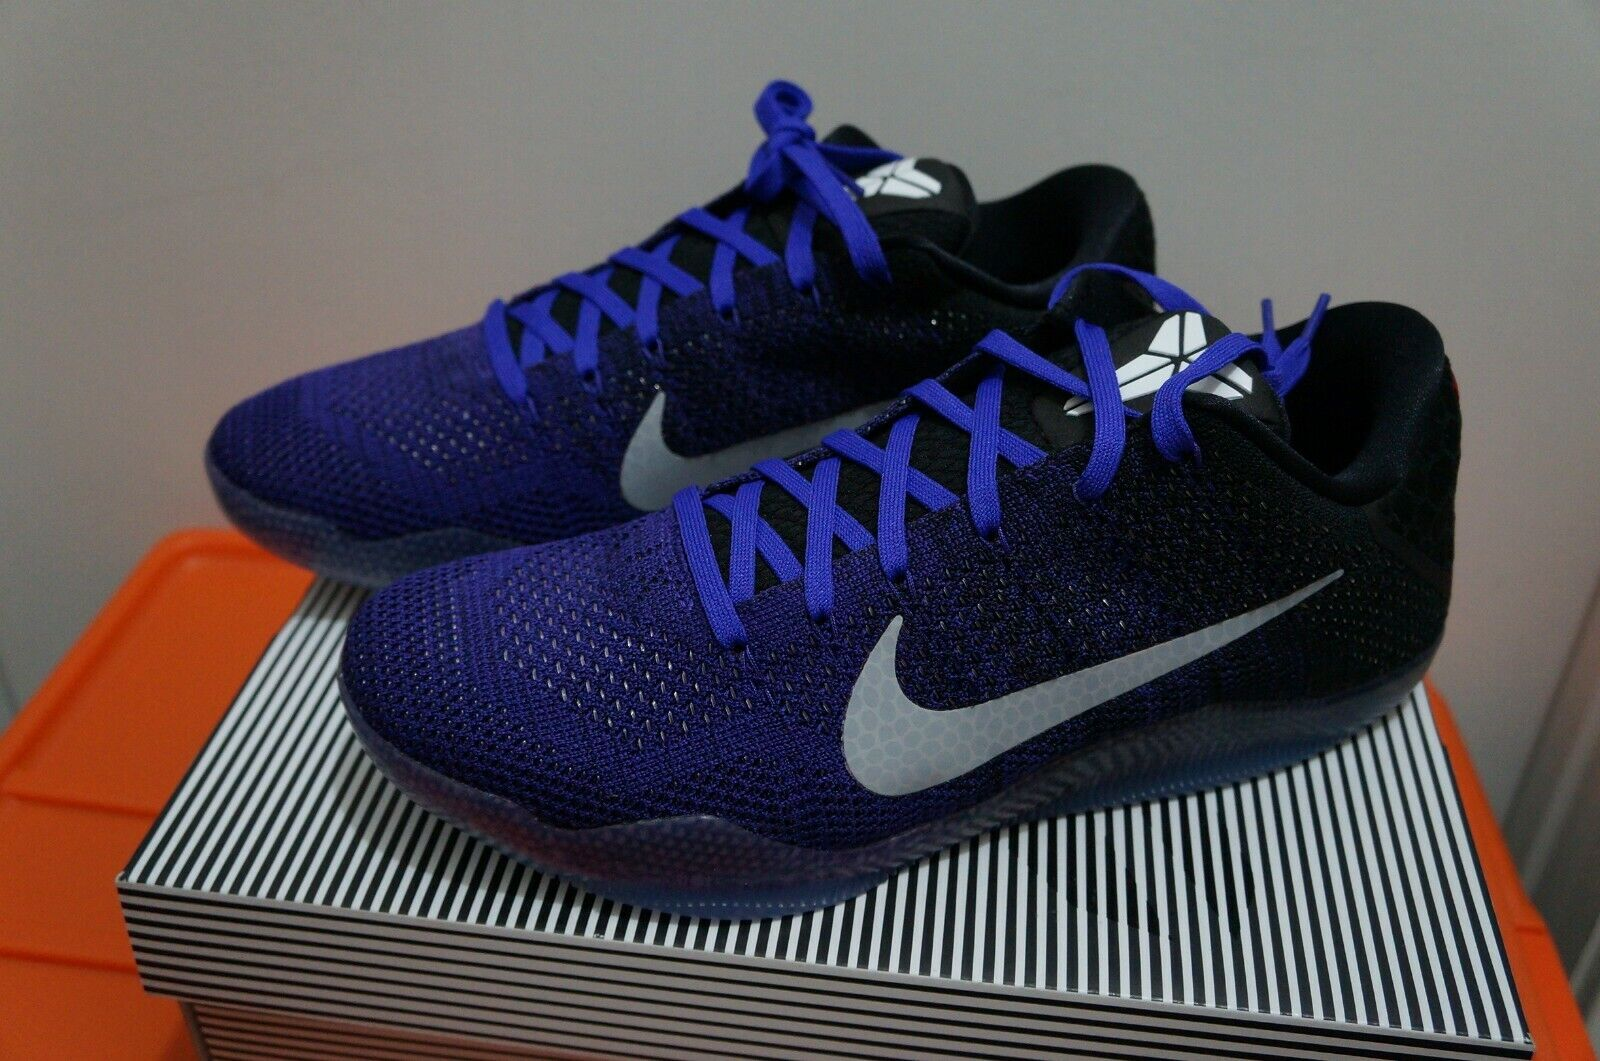 lowest price 8c90f fb8bb Kobe 11 Elite Low Eulogy Hyper Grape Mens Size SZ SZ SZ 10.5 822675-510